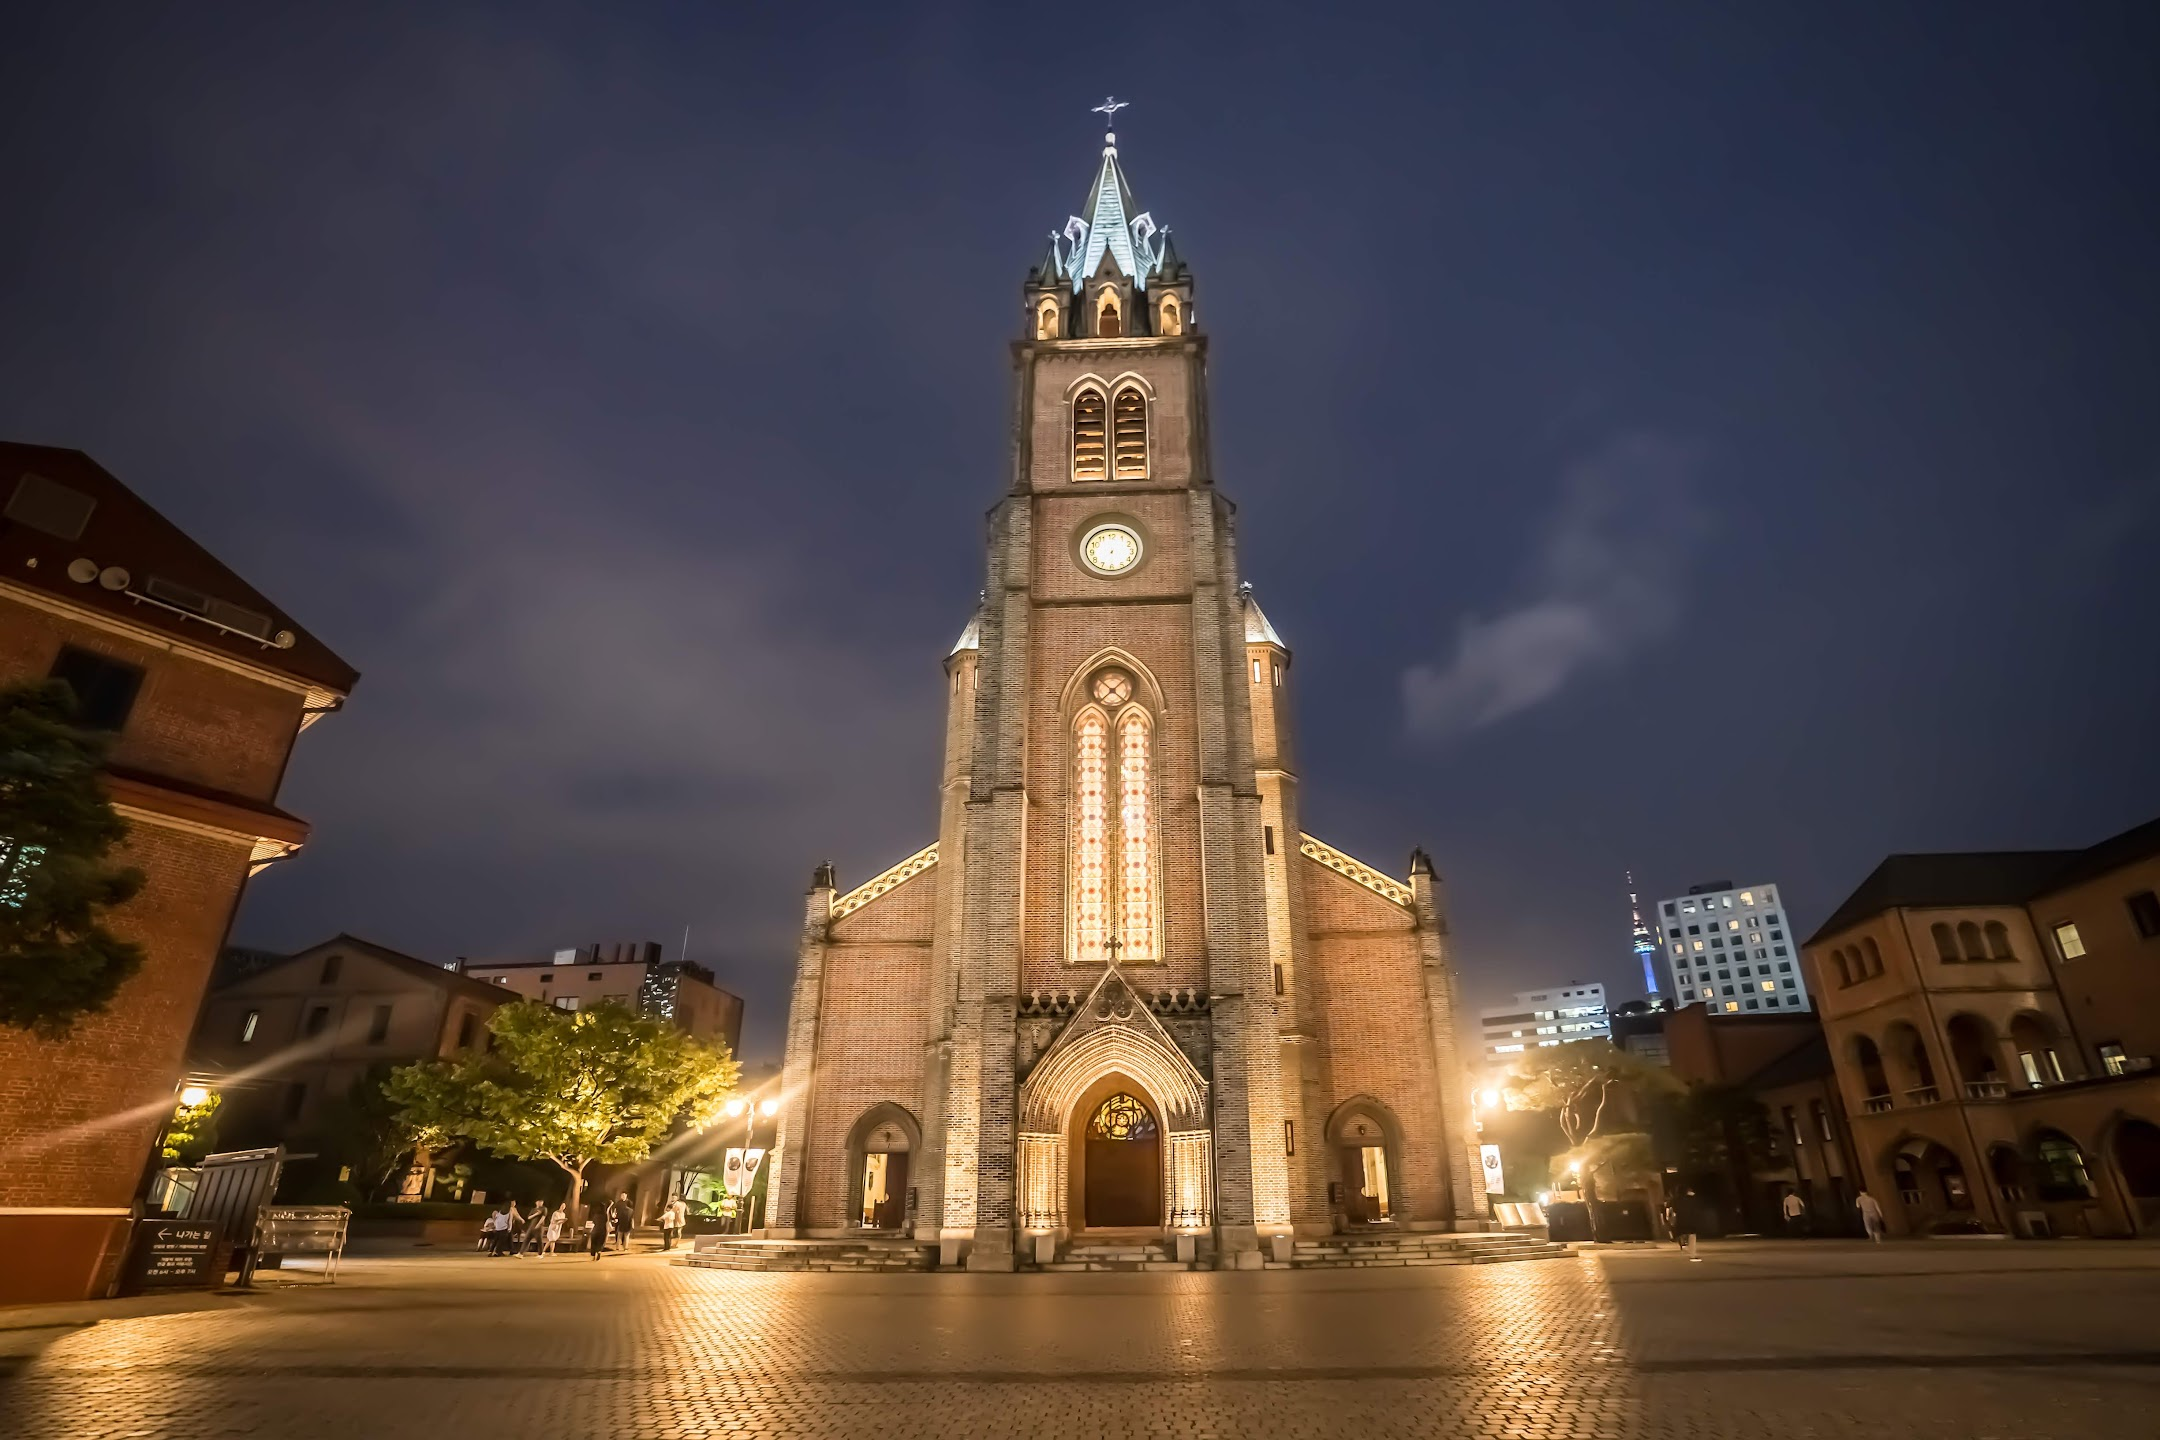 Seoul Myeong-dong Cathedral evening light-up2